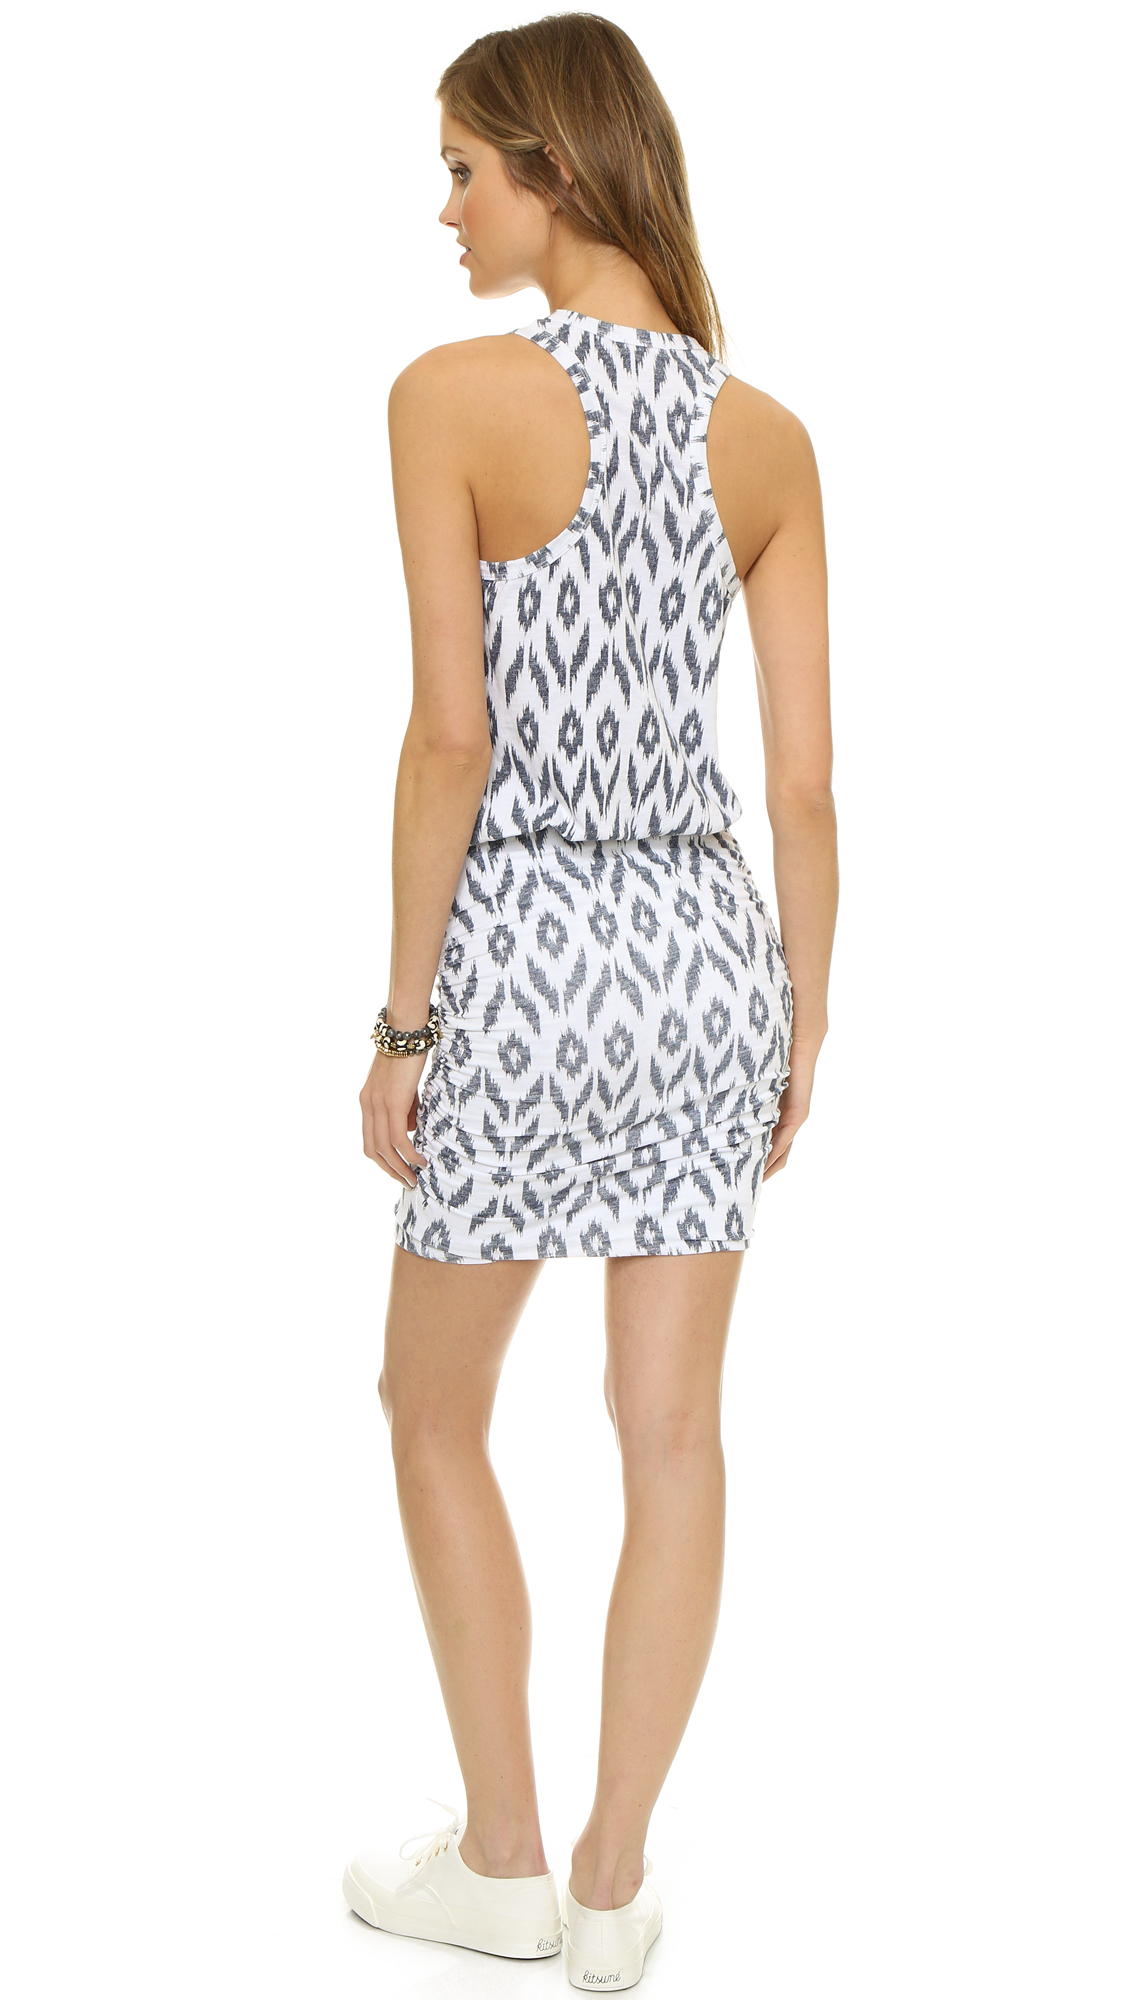 c6eac0d043534 SUNDRY Ikat Sleeveless Dress